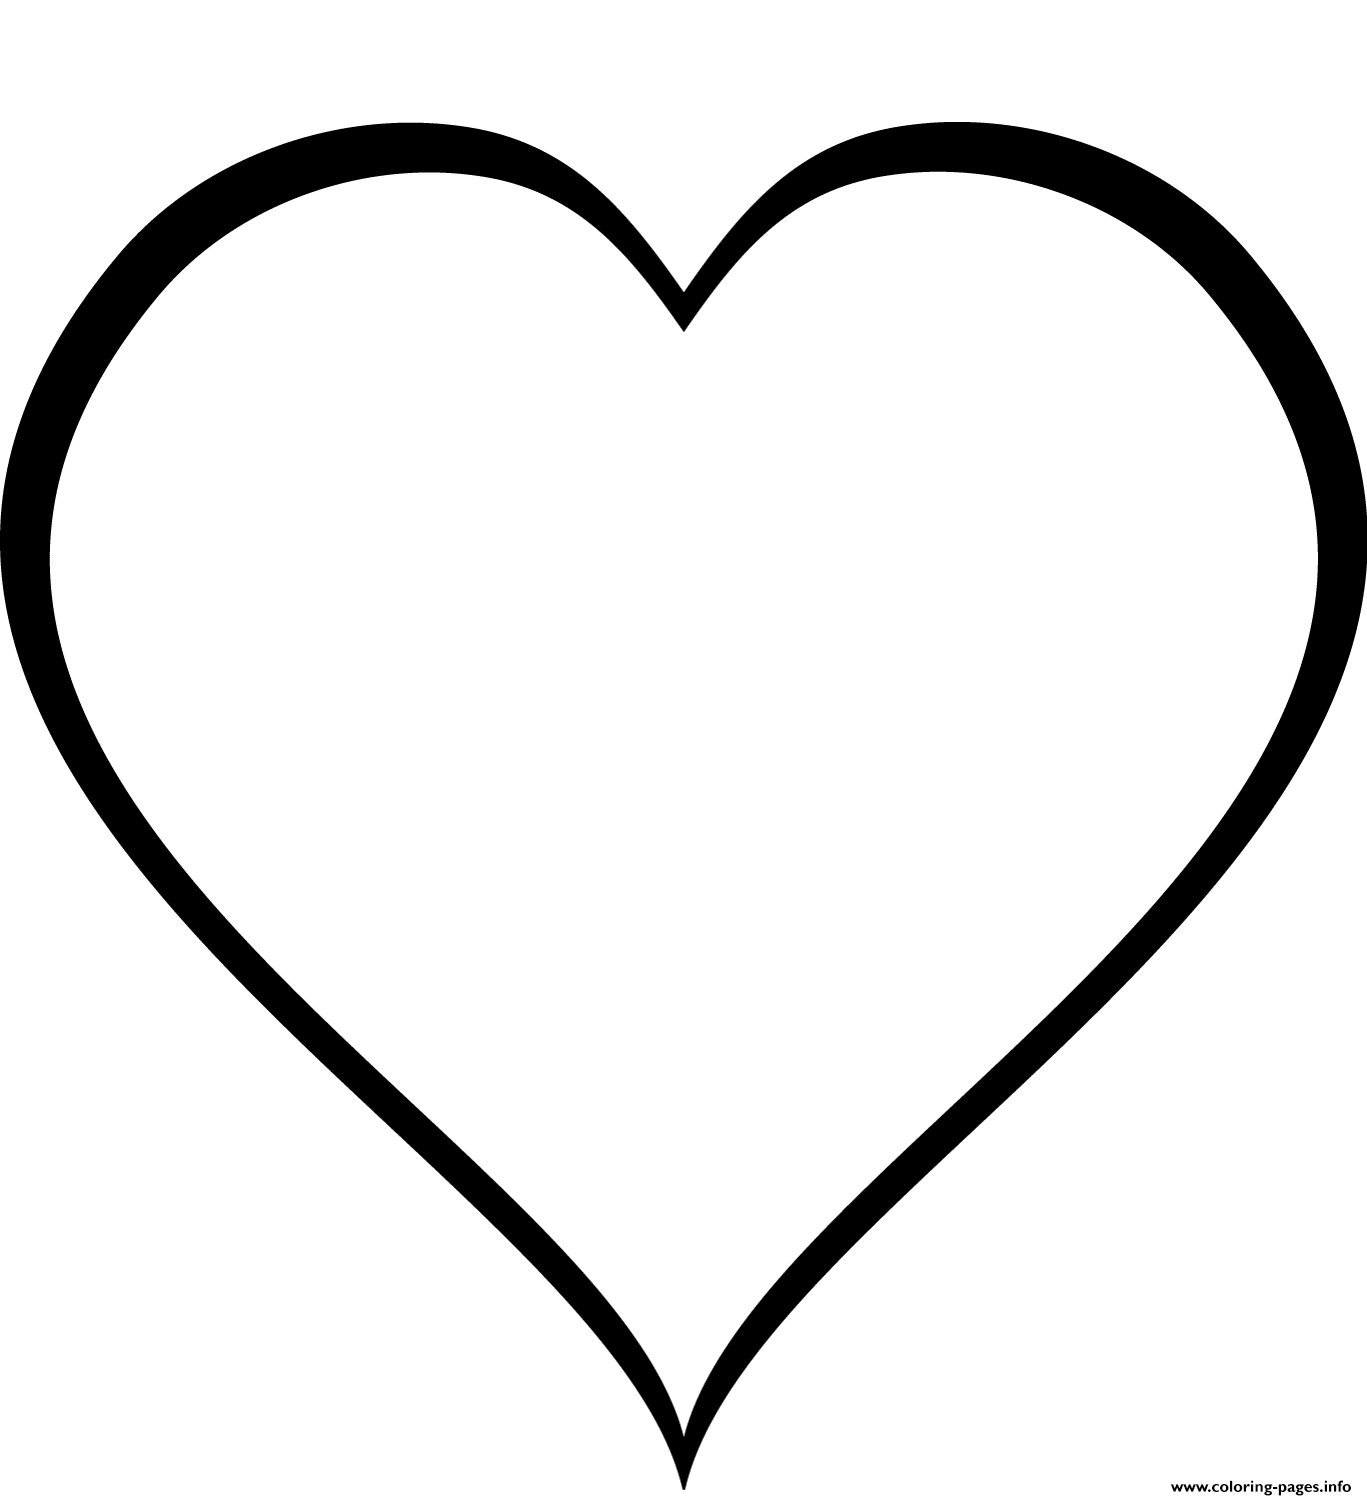 Simple Heart 3 coloring pages